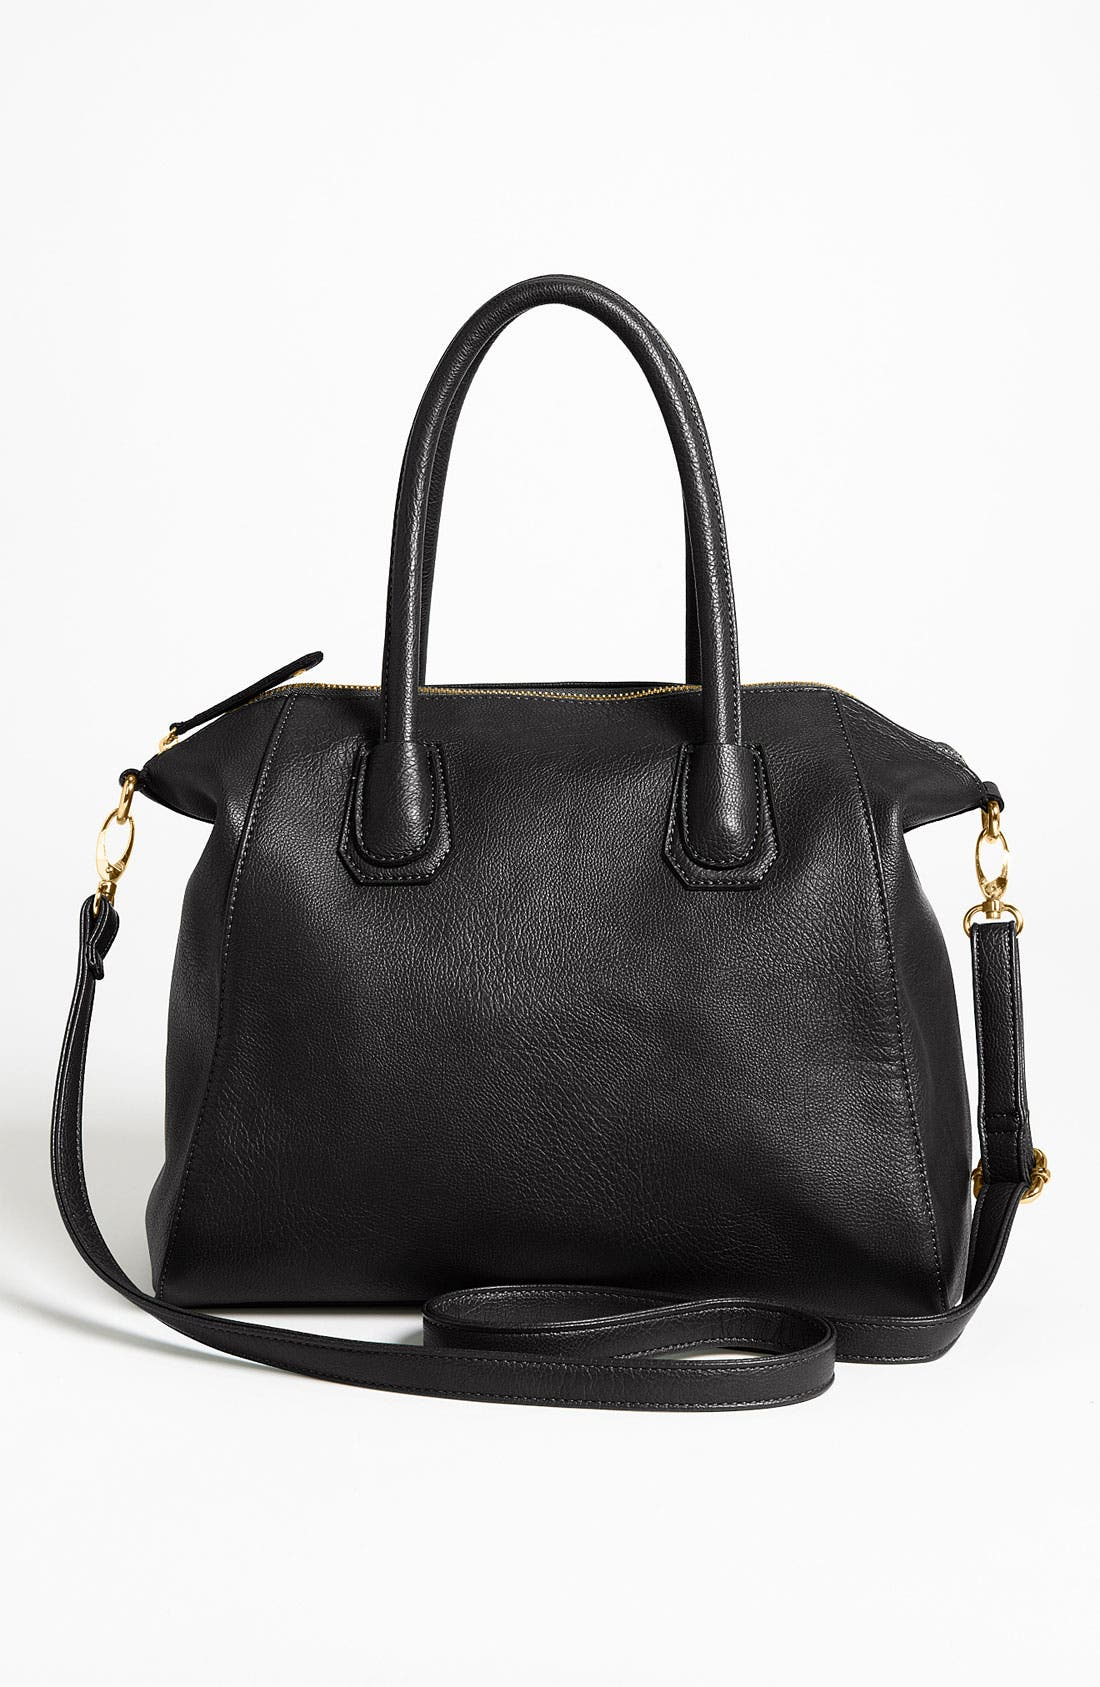 Alternate Image 1 Selected - Street Level Faux Leather Satchel